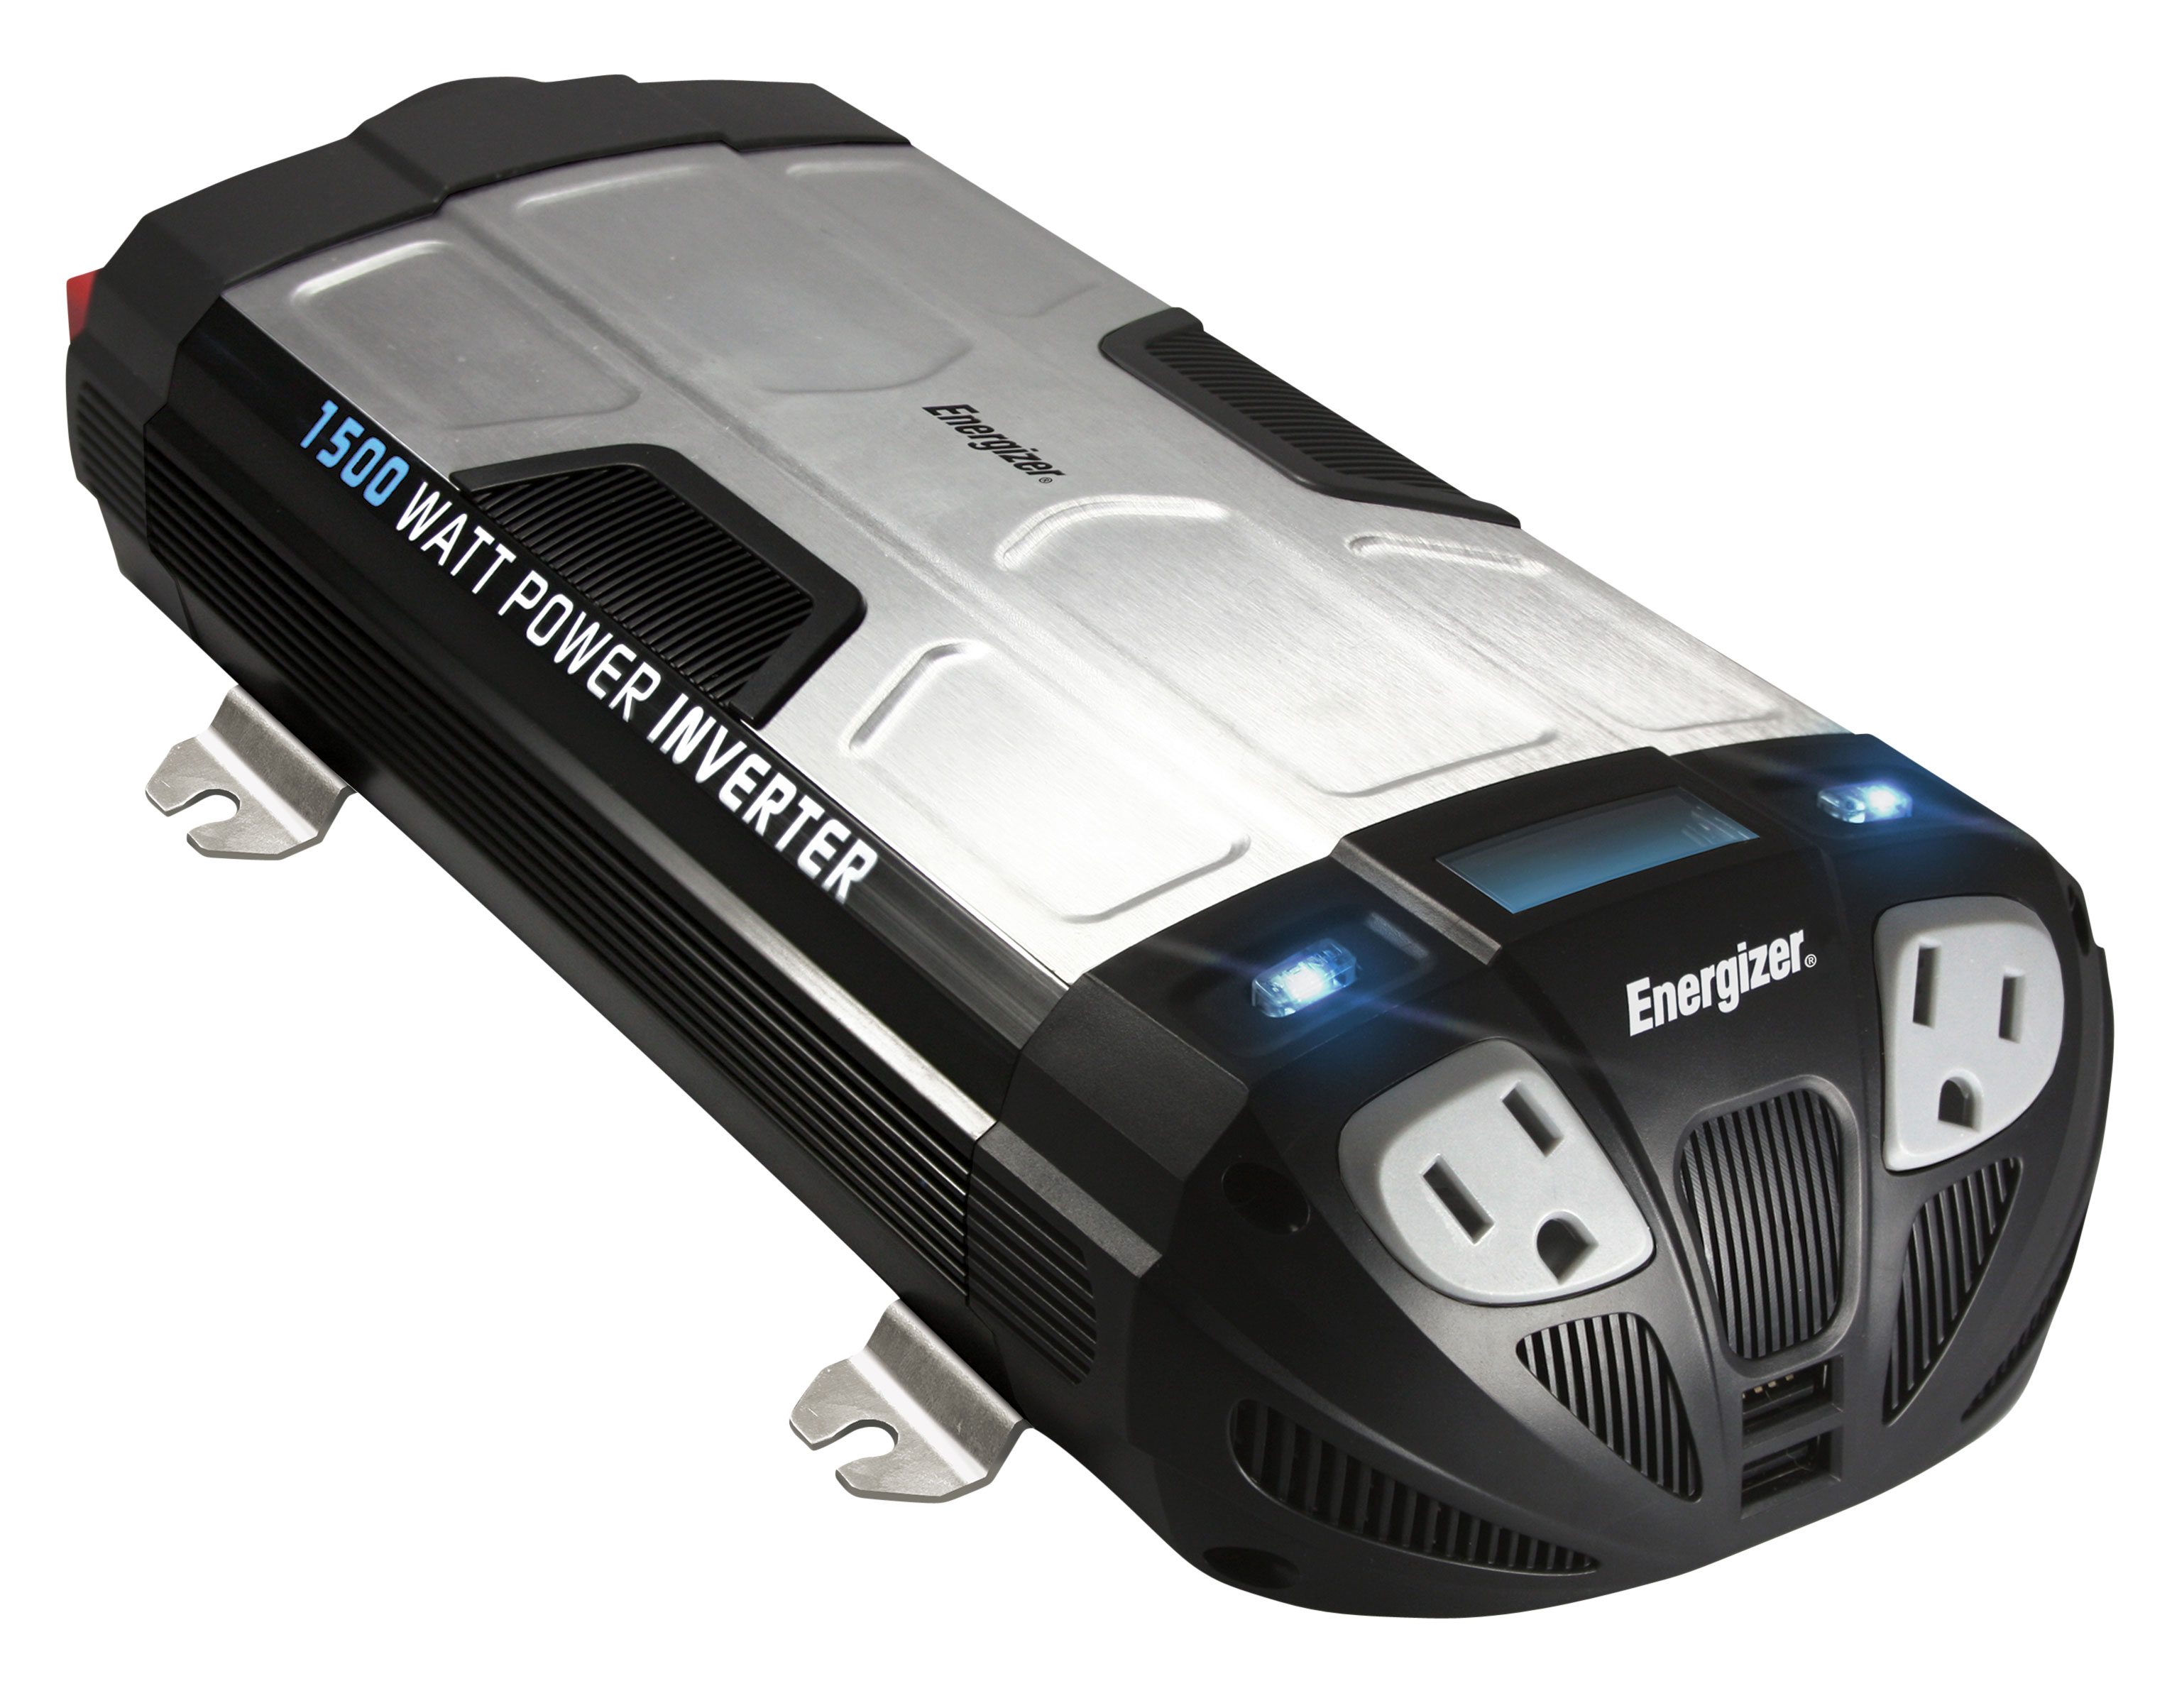 Energizer Power - Inverters, Jump Starters, Battery Chargers